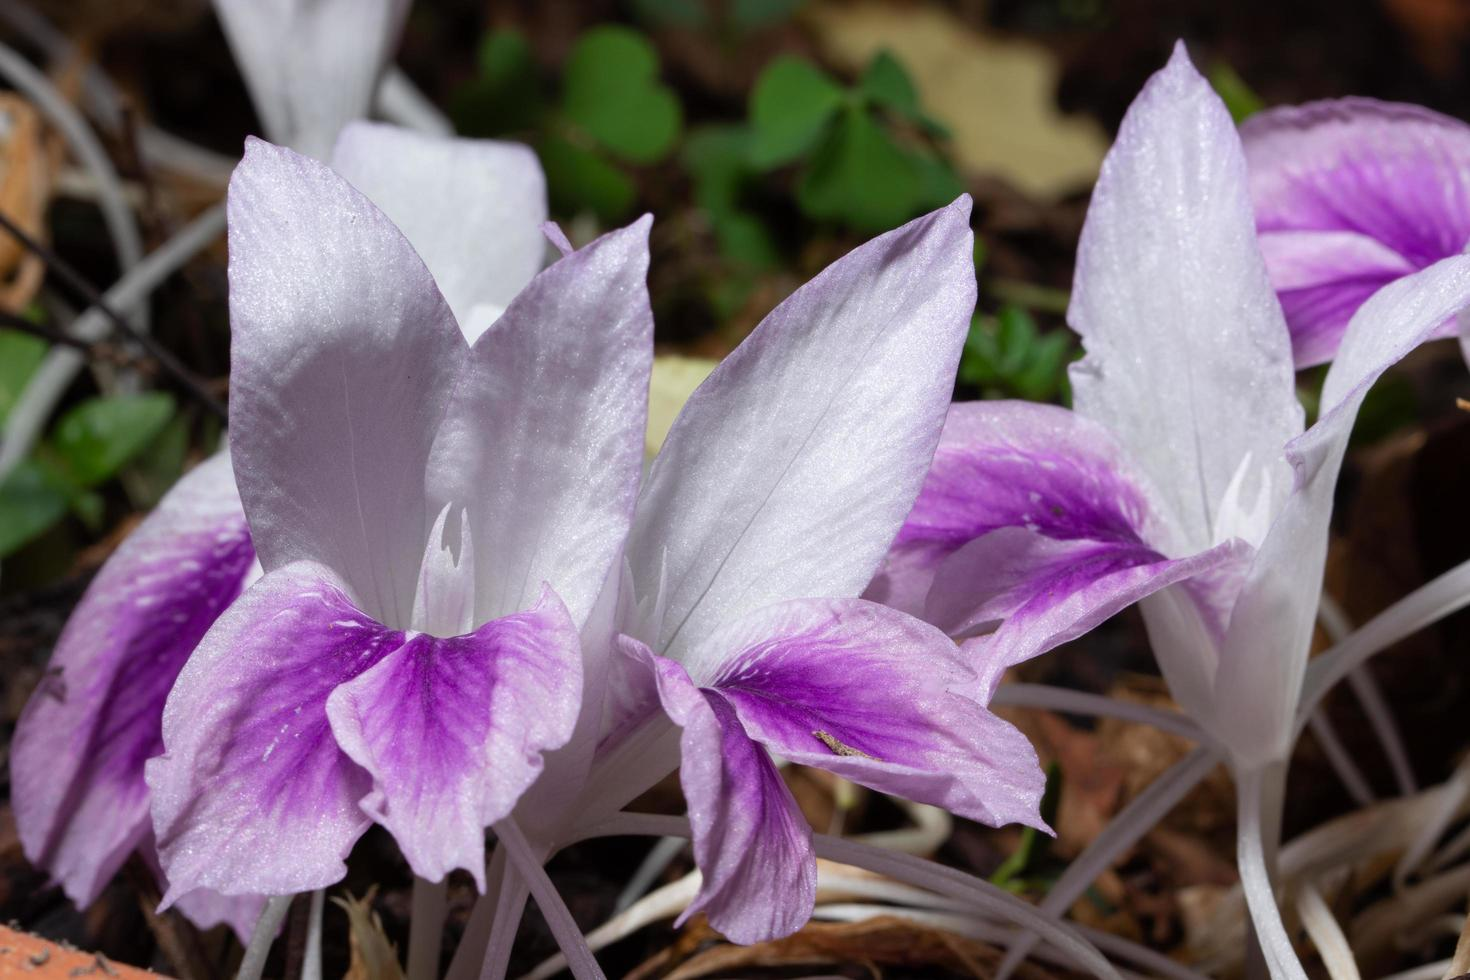 White and purple flower background photo